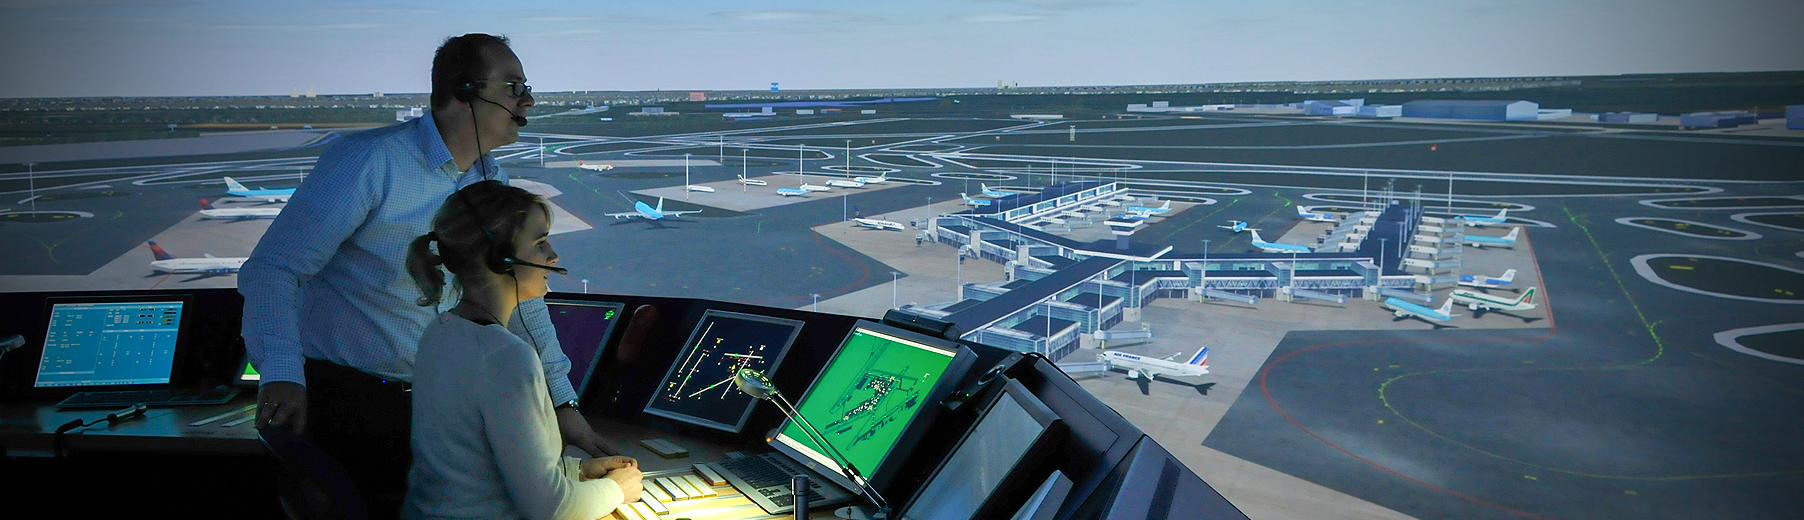 Atm And Airports Nlr Simulator Software Engineering Case Study